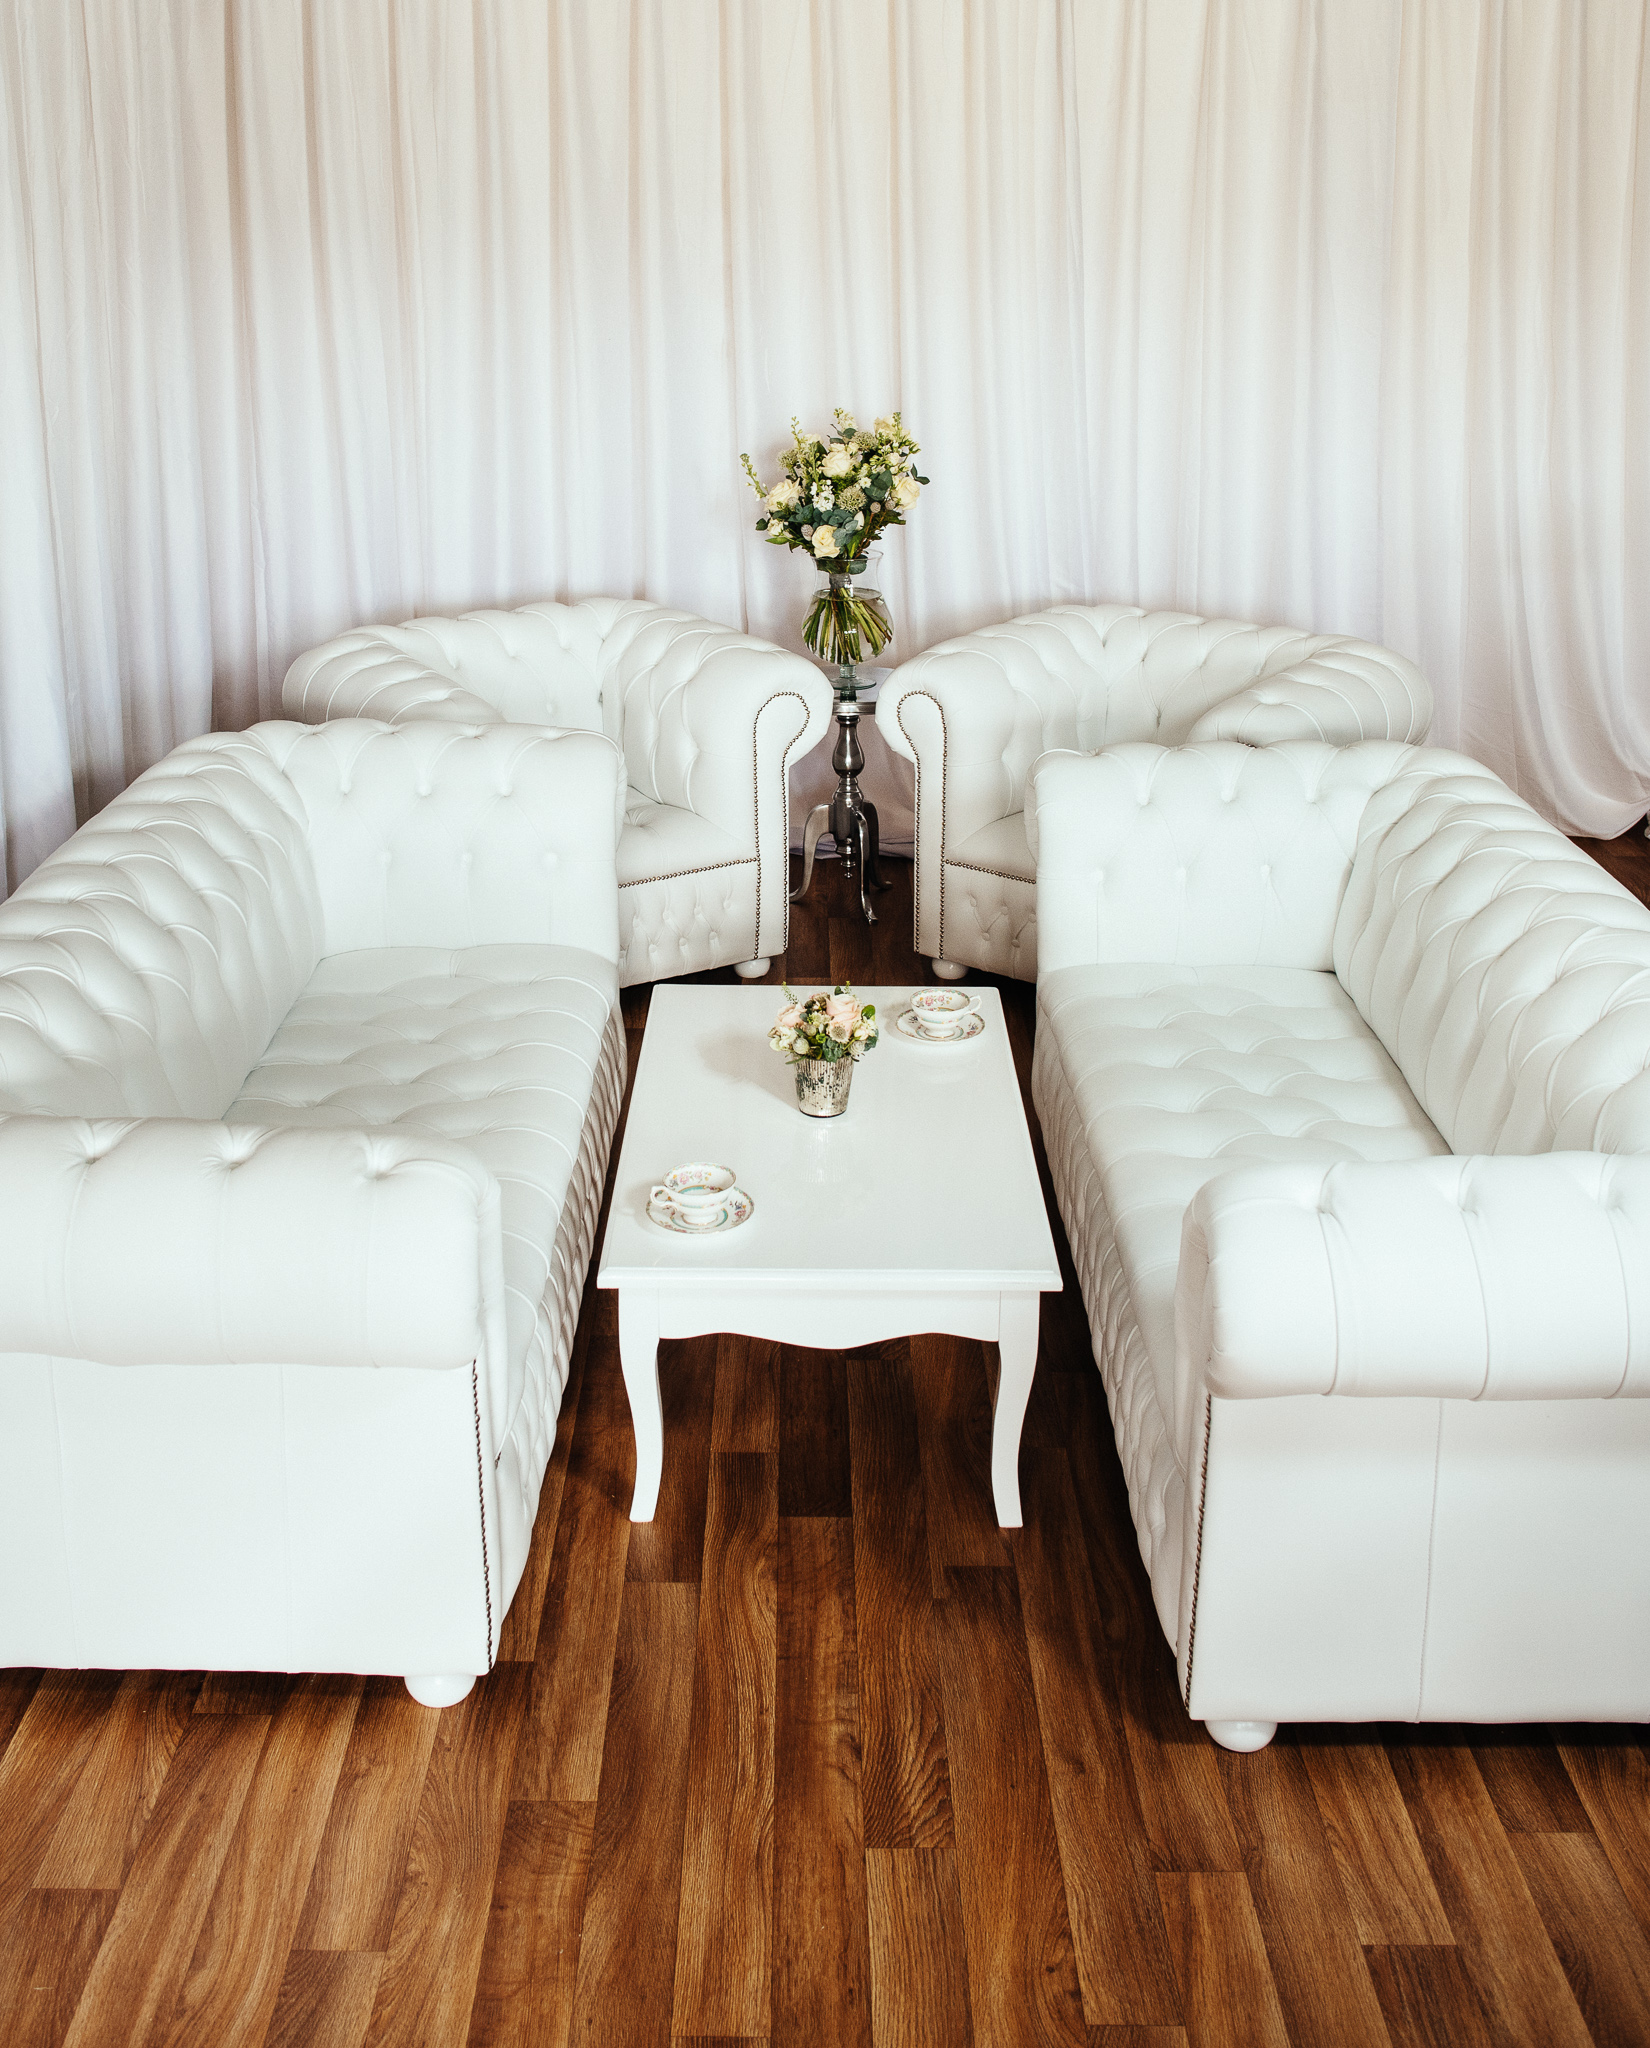 Leather Furniture Company: Luxury British-Made White Leather Chesterfield Sofa Set